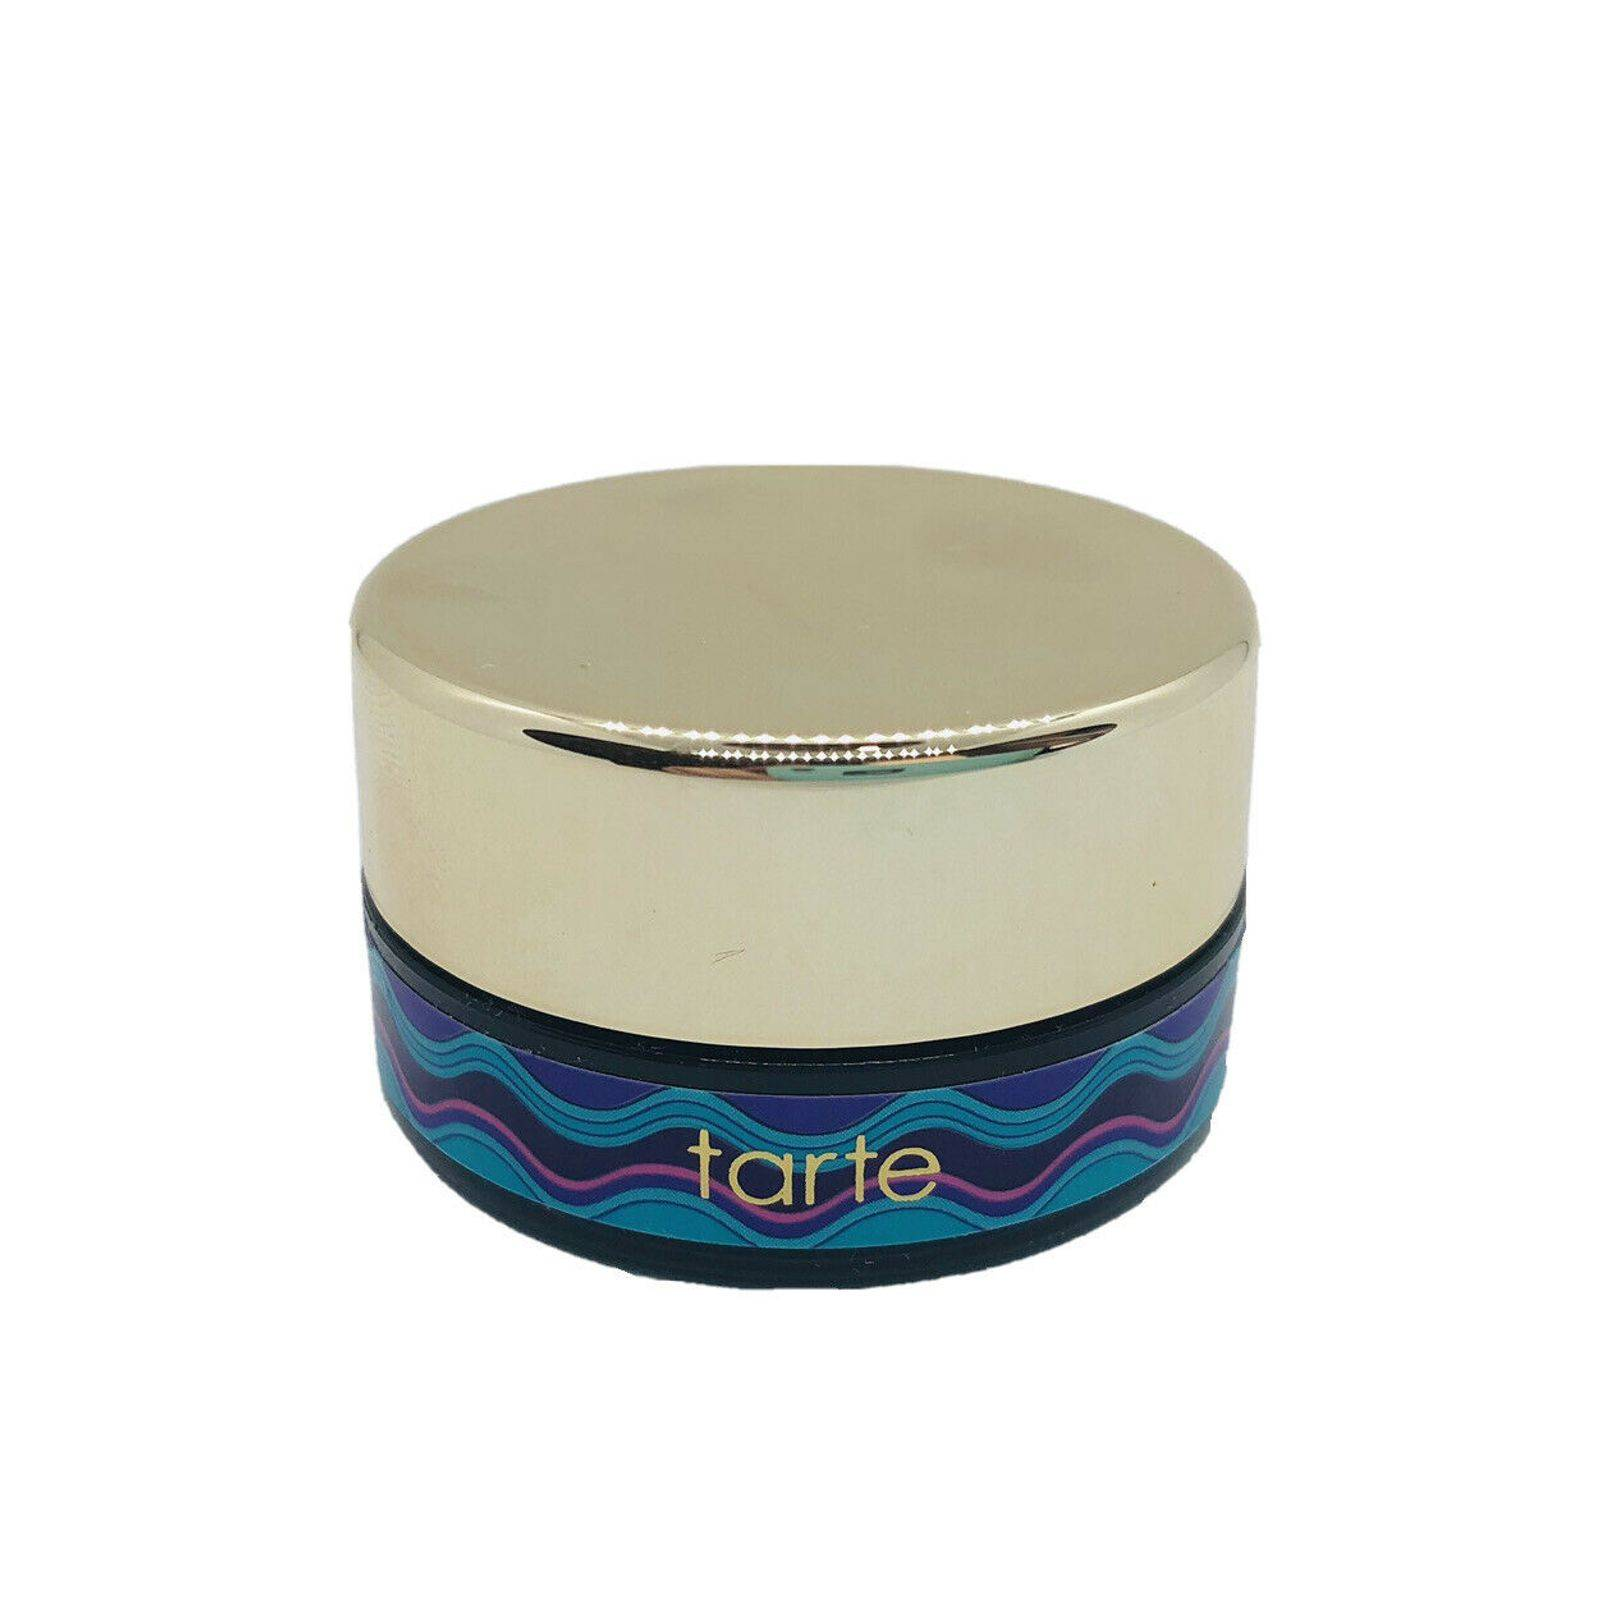 Tarte Rainforest Hydrating Moisturizer